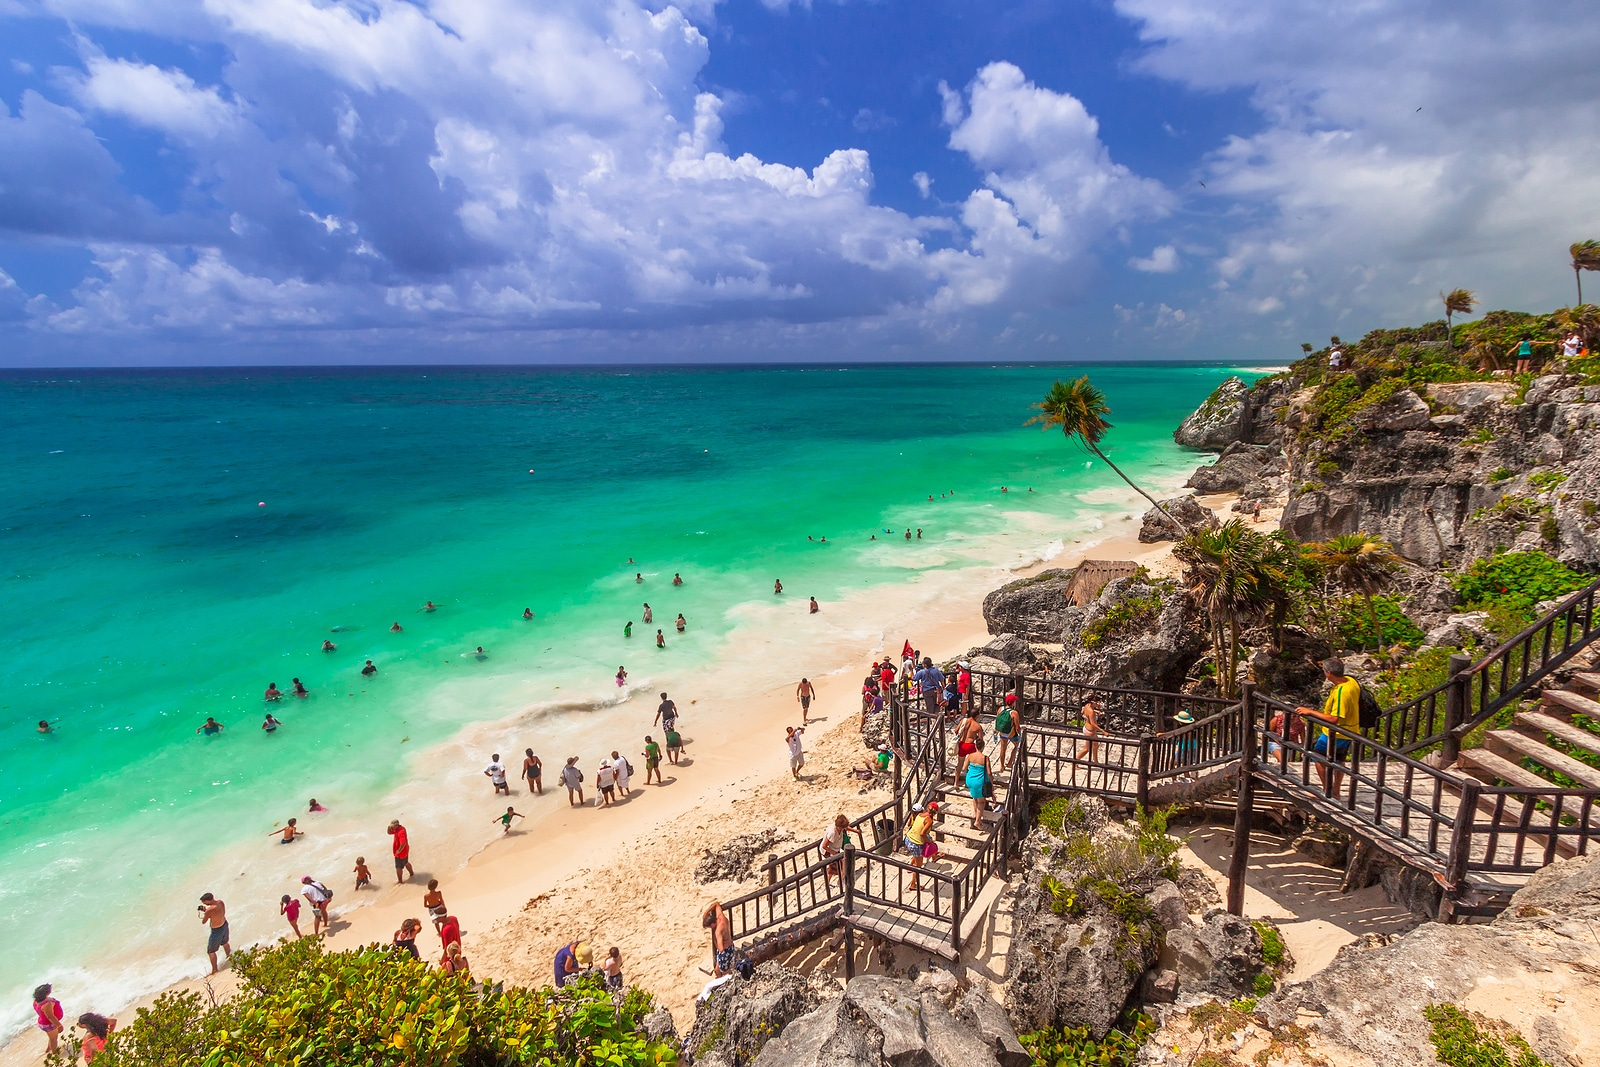 TULUM, MEXICO - JULY 15, 2011: Idyllic beach of Tulum with people swiming in caribbean sea, Quintana Roo, Mexico. Tulum is an archaeological site in the Riviera Maya, Yucatan.